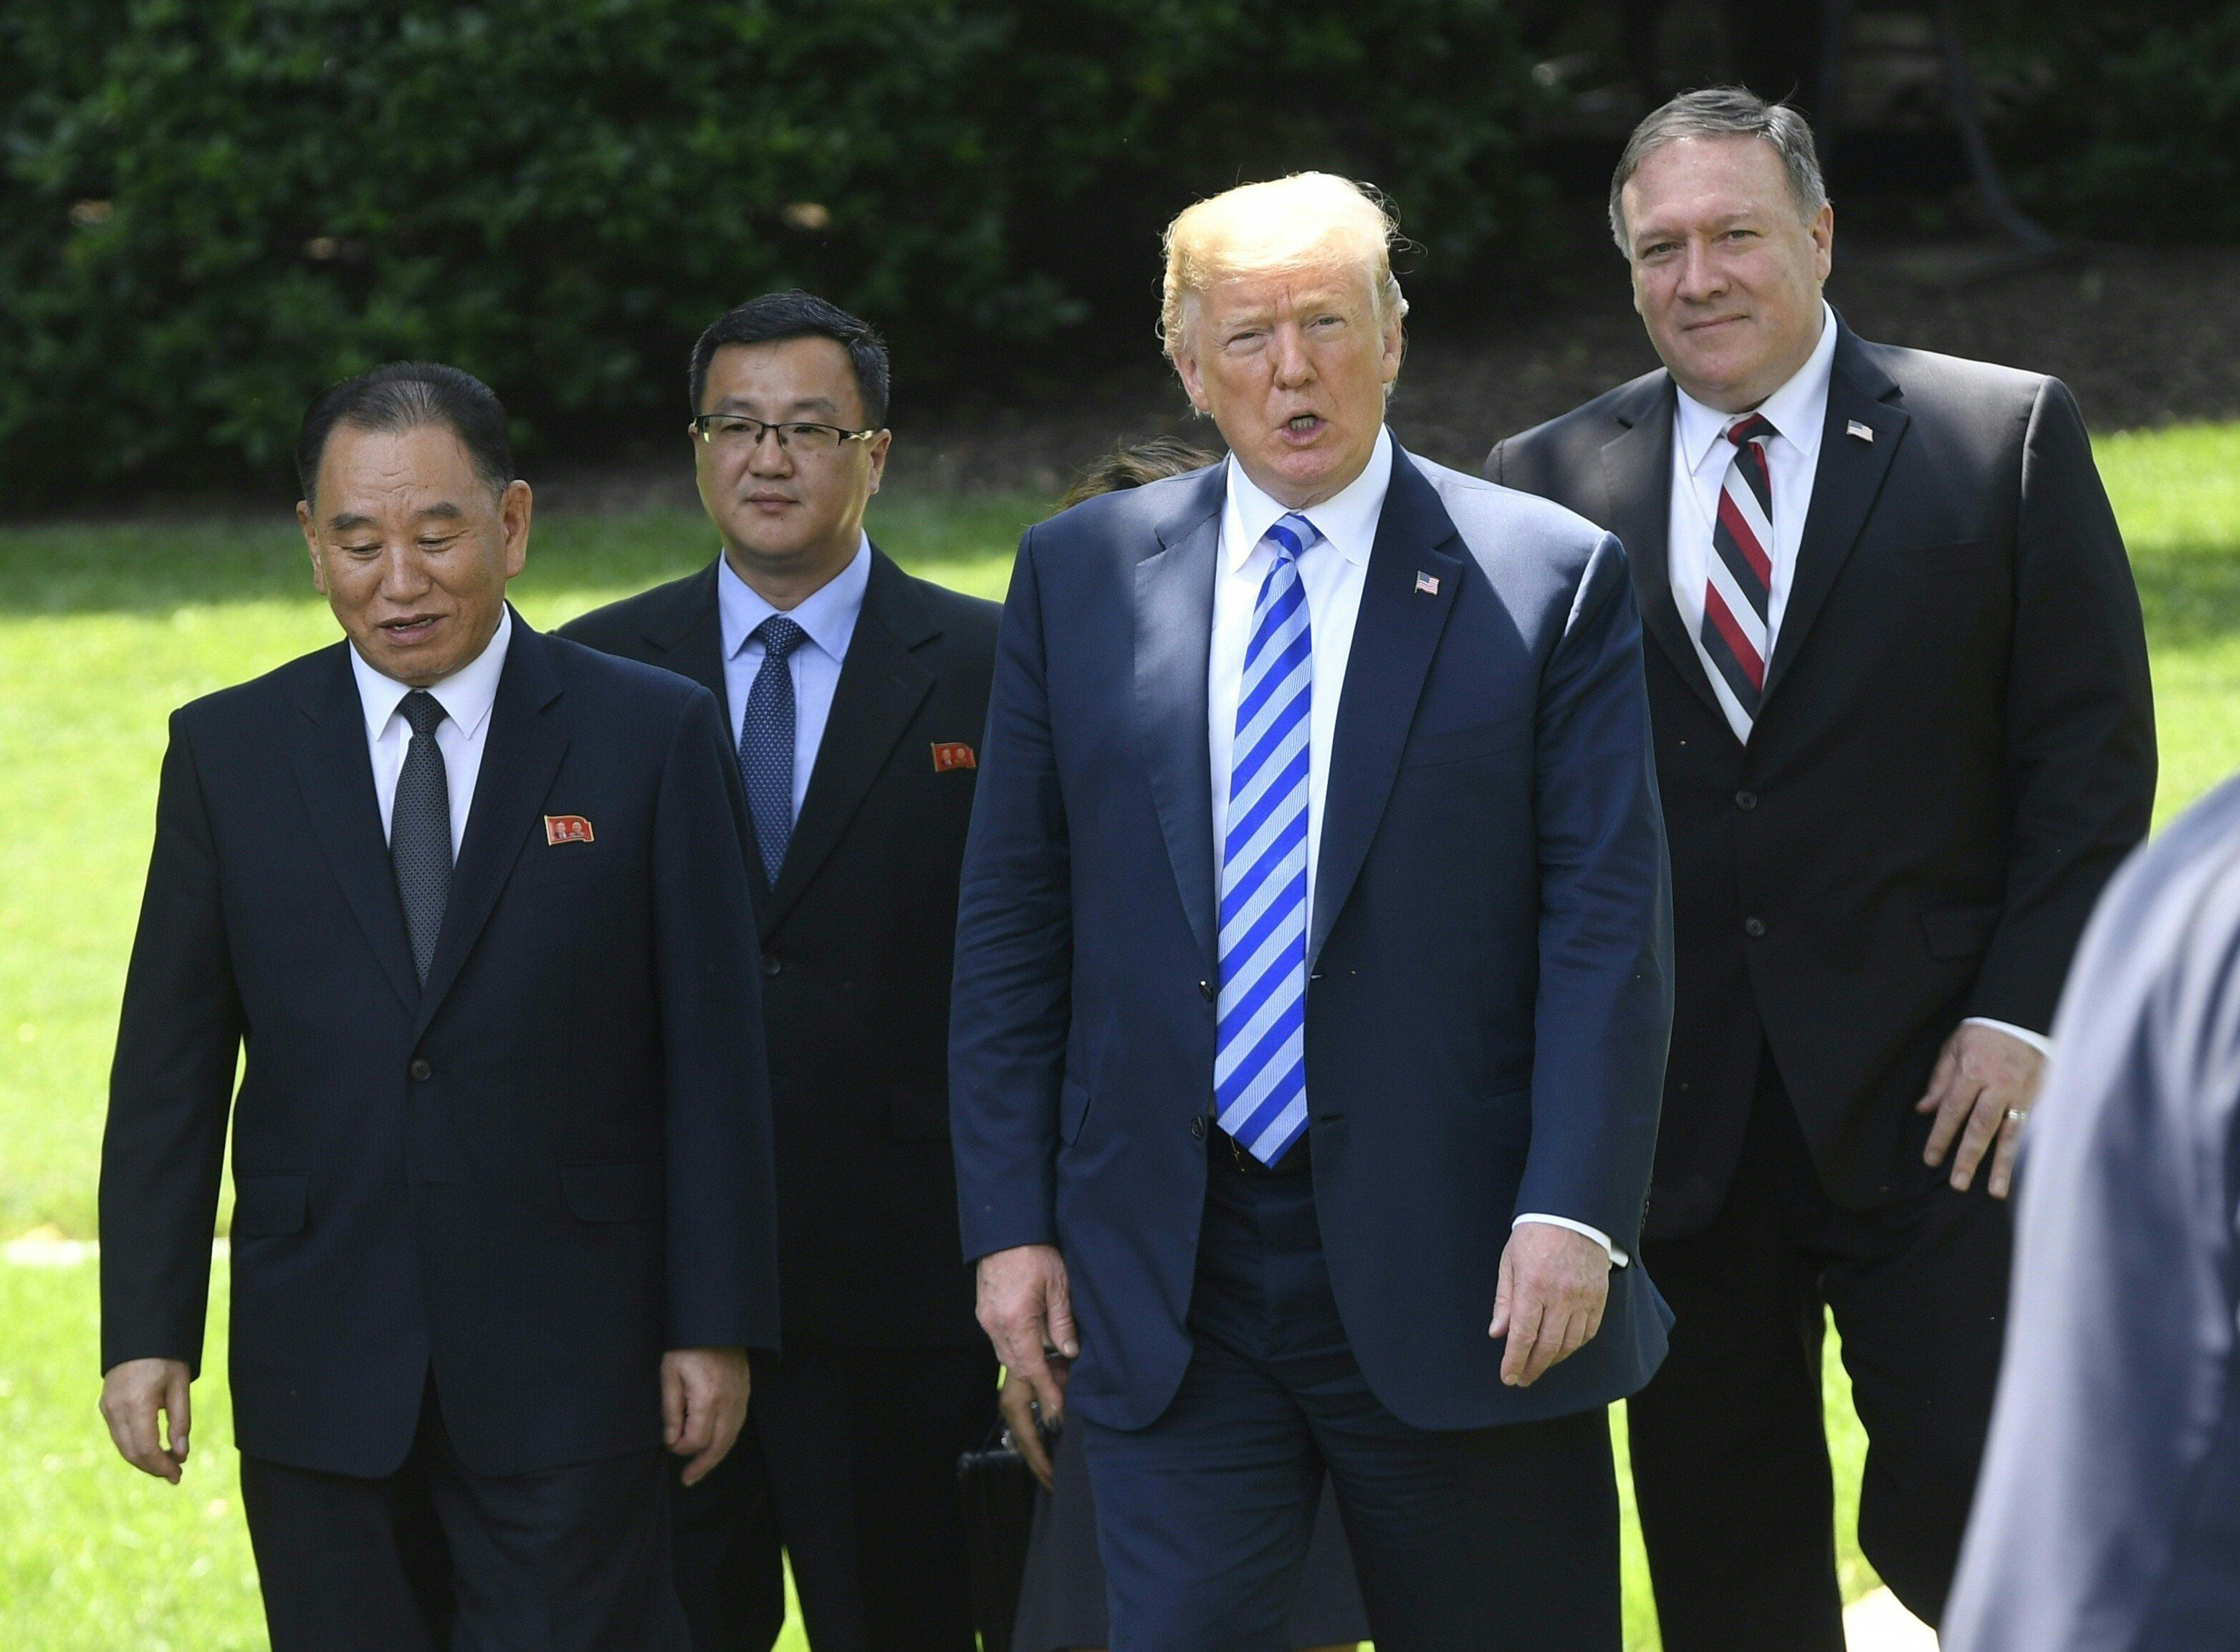 Trump flanked by US Secretary of State Mike Pompeo (R), walks with North Korean Kim Yong Chol (L) at the White House earlier today.